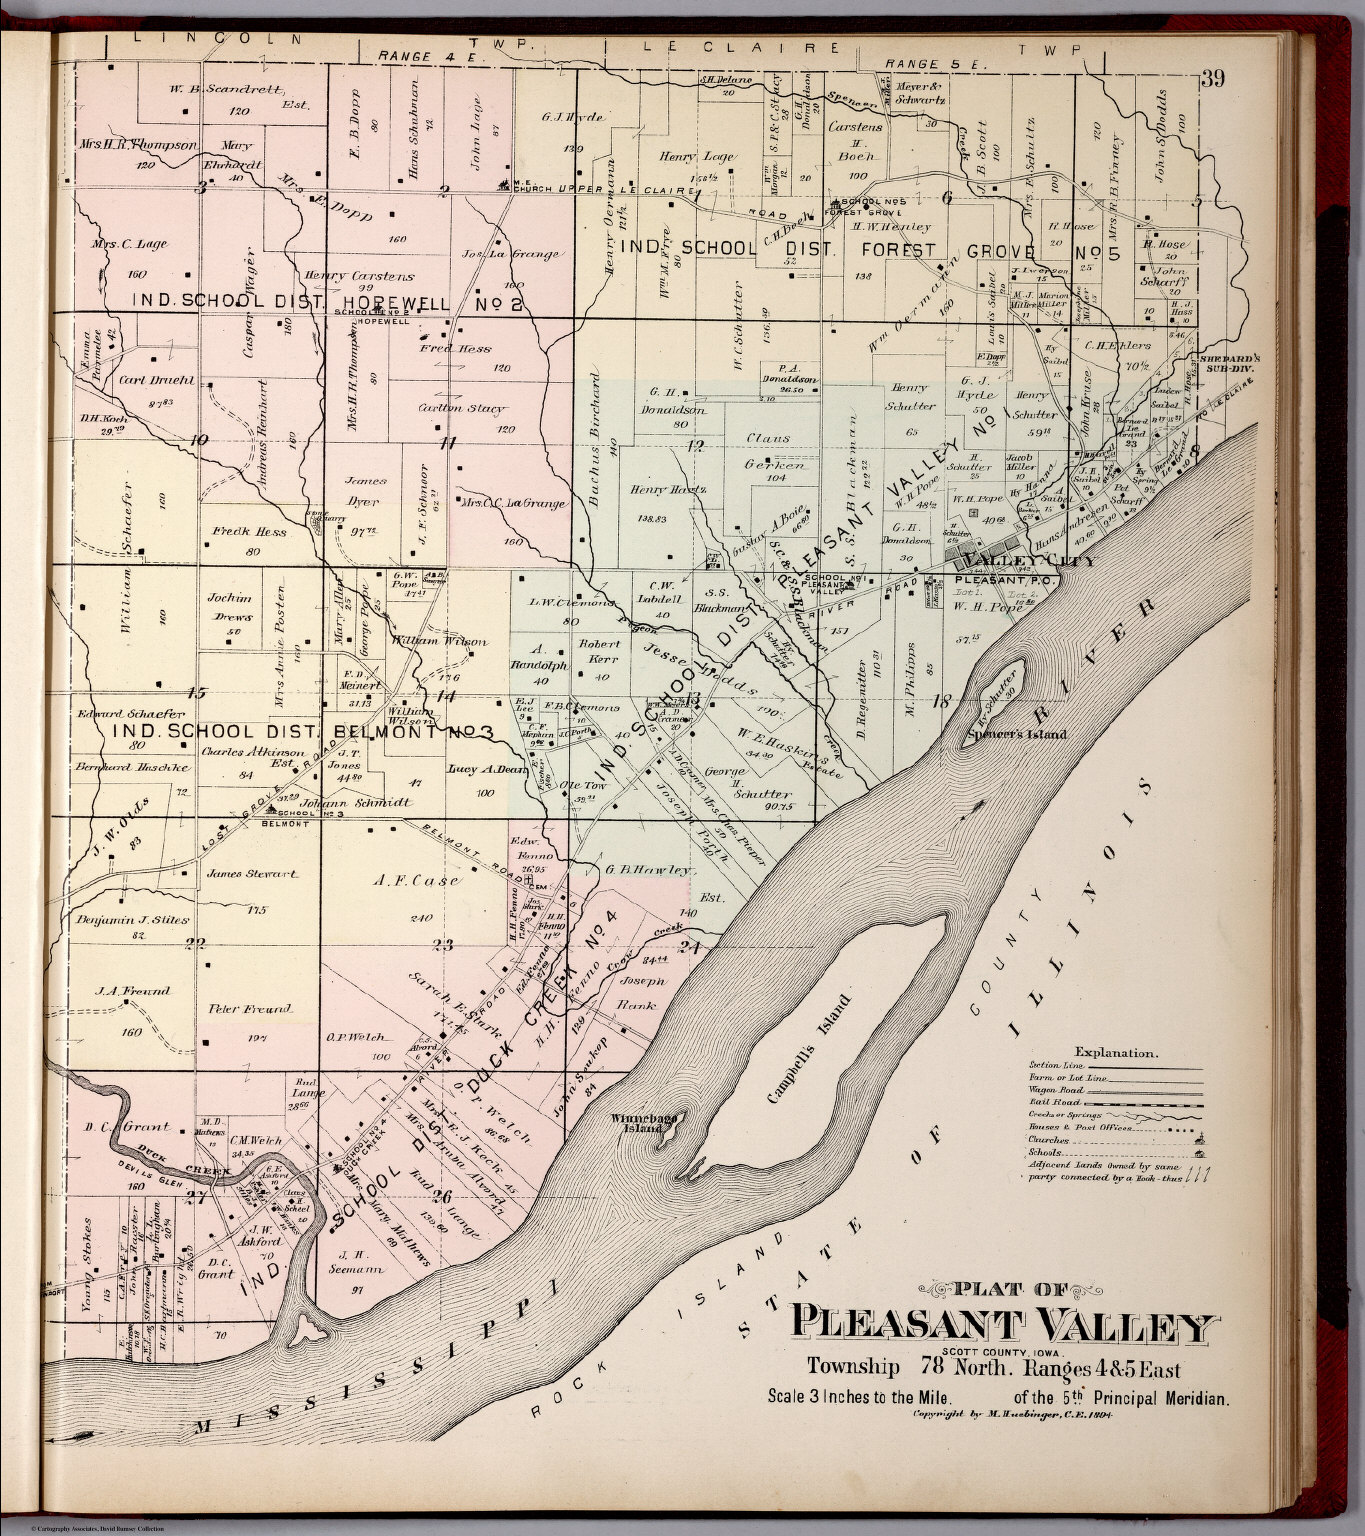 Scott County Plat Map Plat of Pleasant Valley Township, Scott County, Iowa.   David  Scott County Plat Map